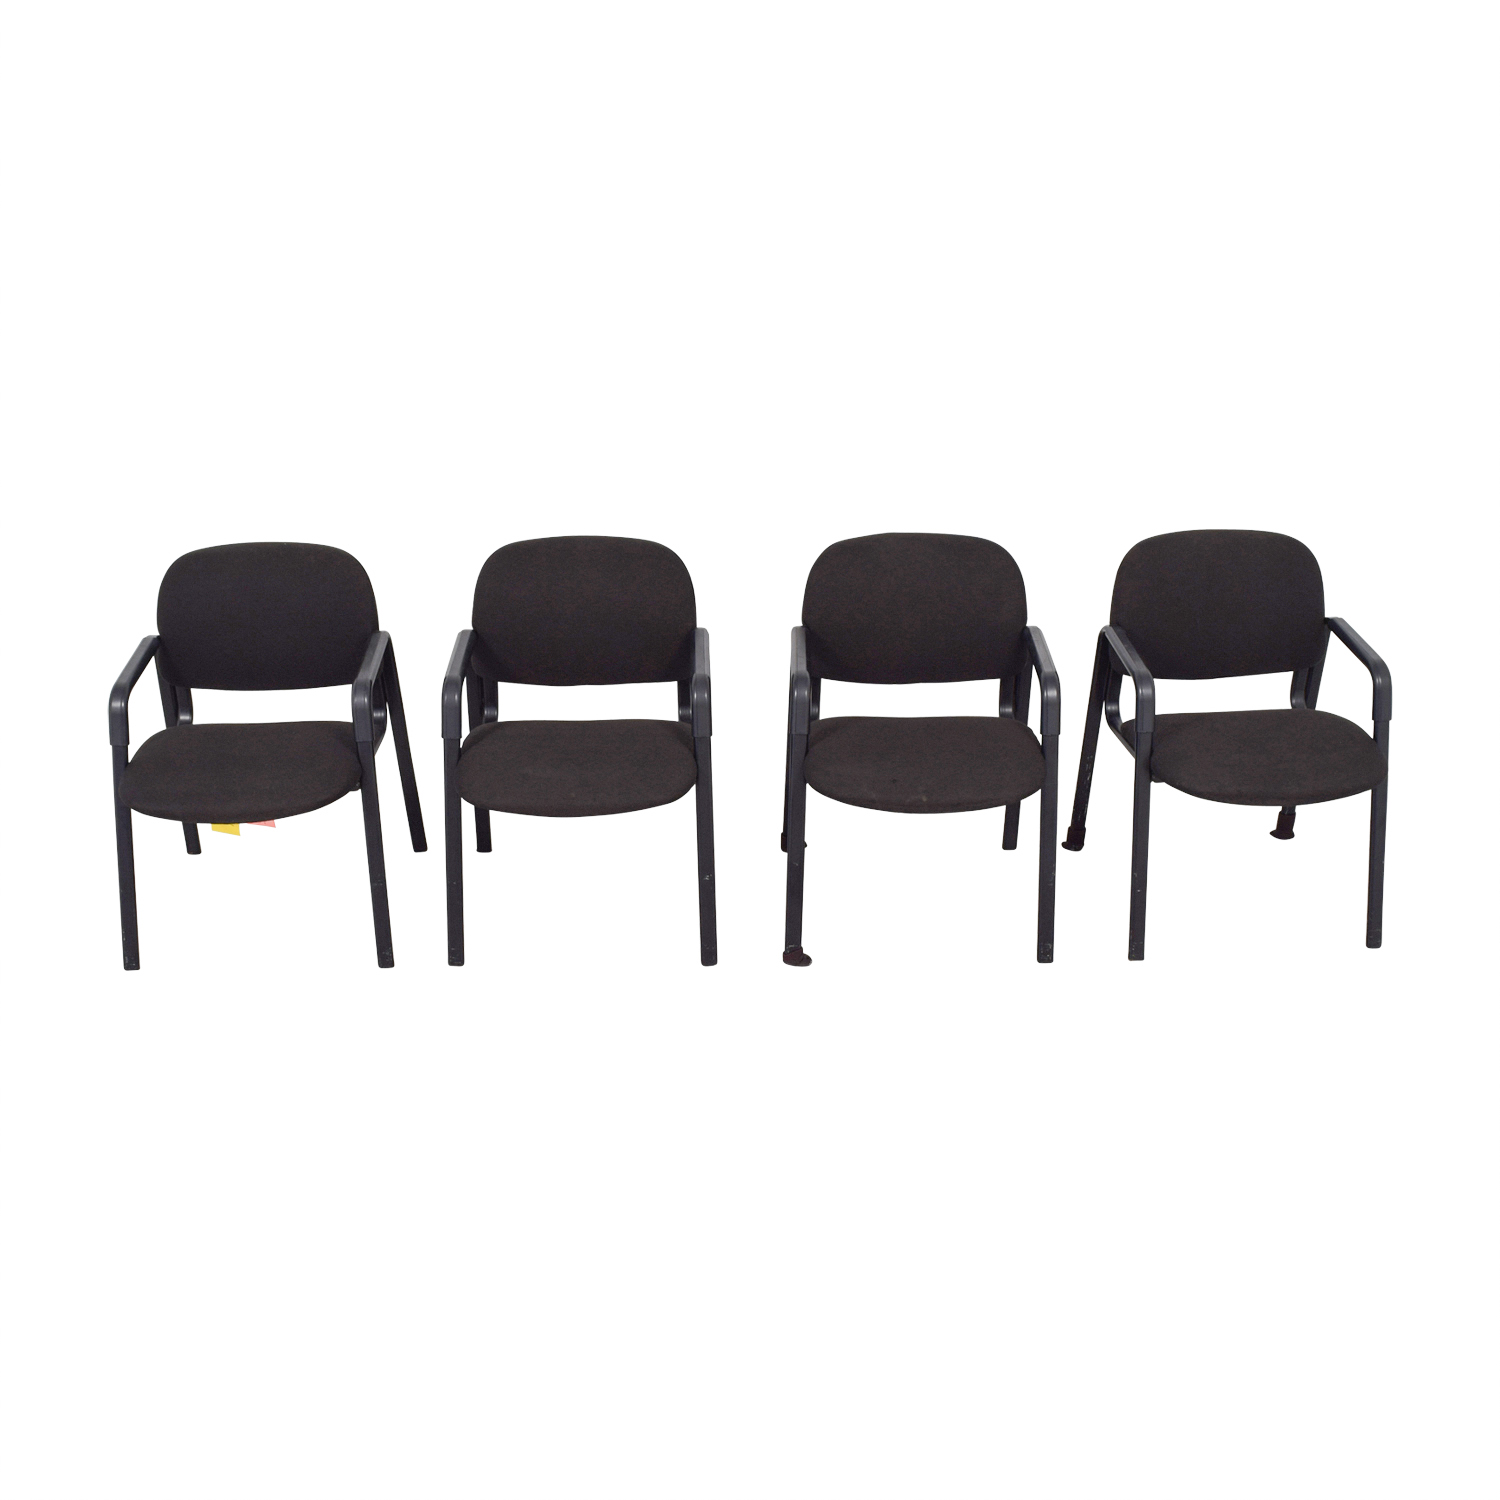 90 Off Black Office Chairs Chairs